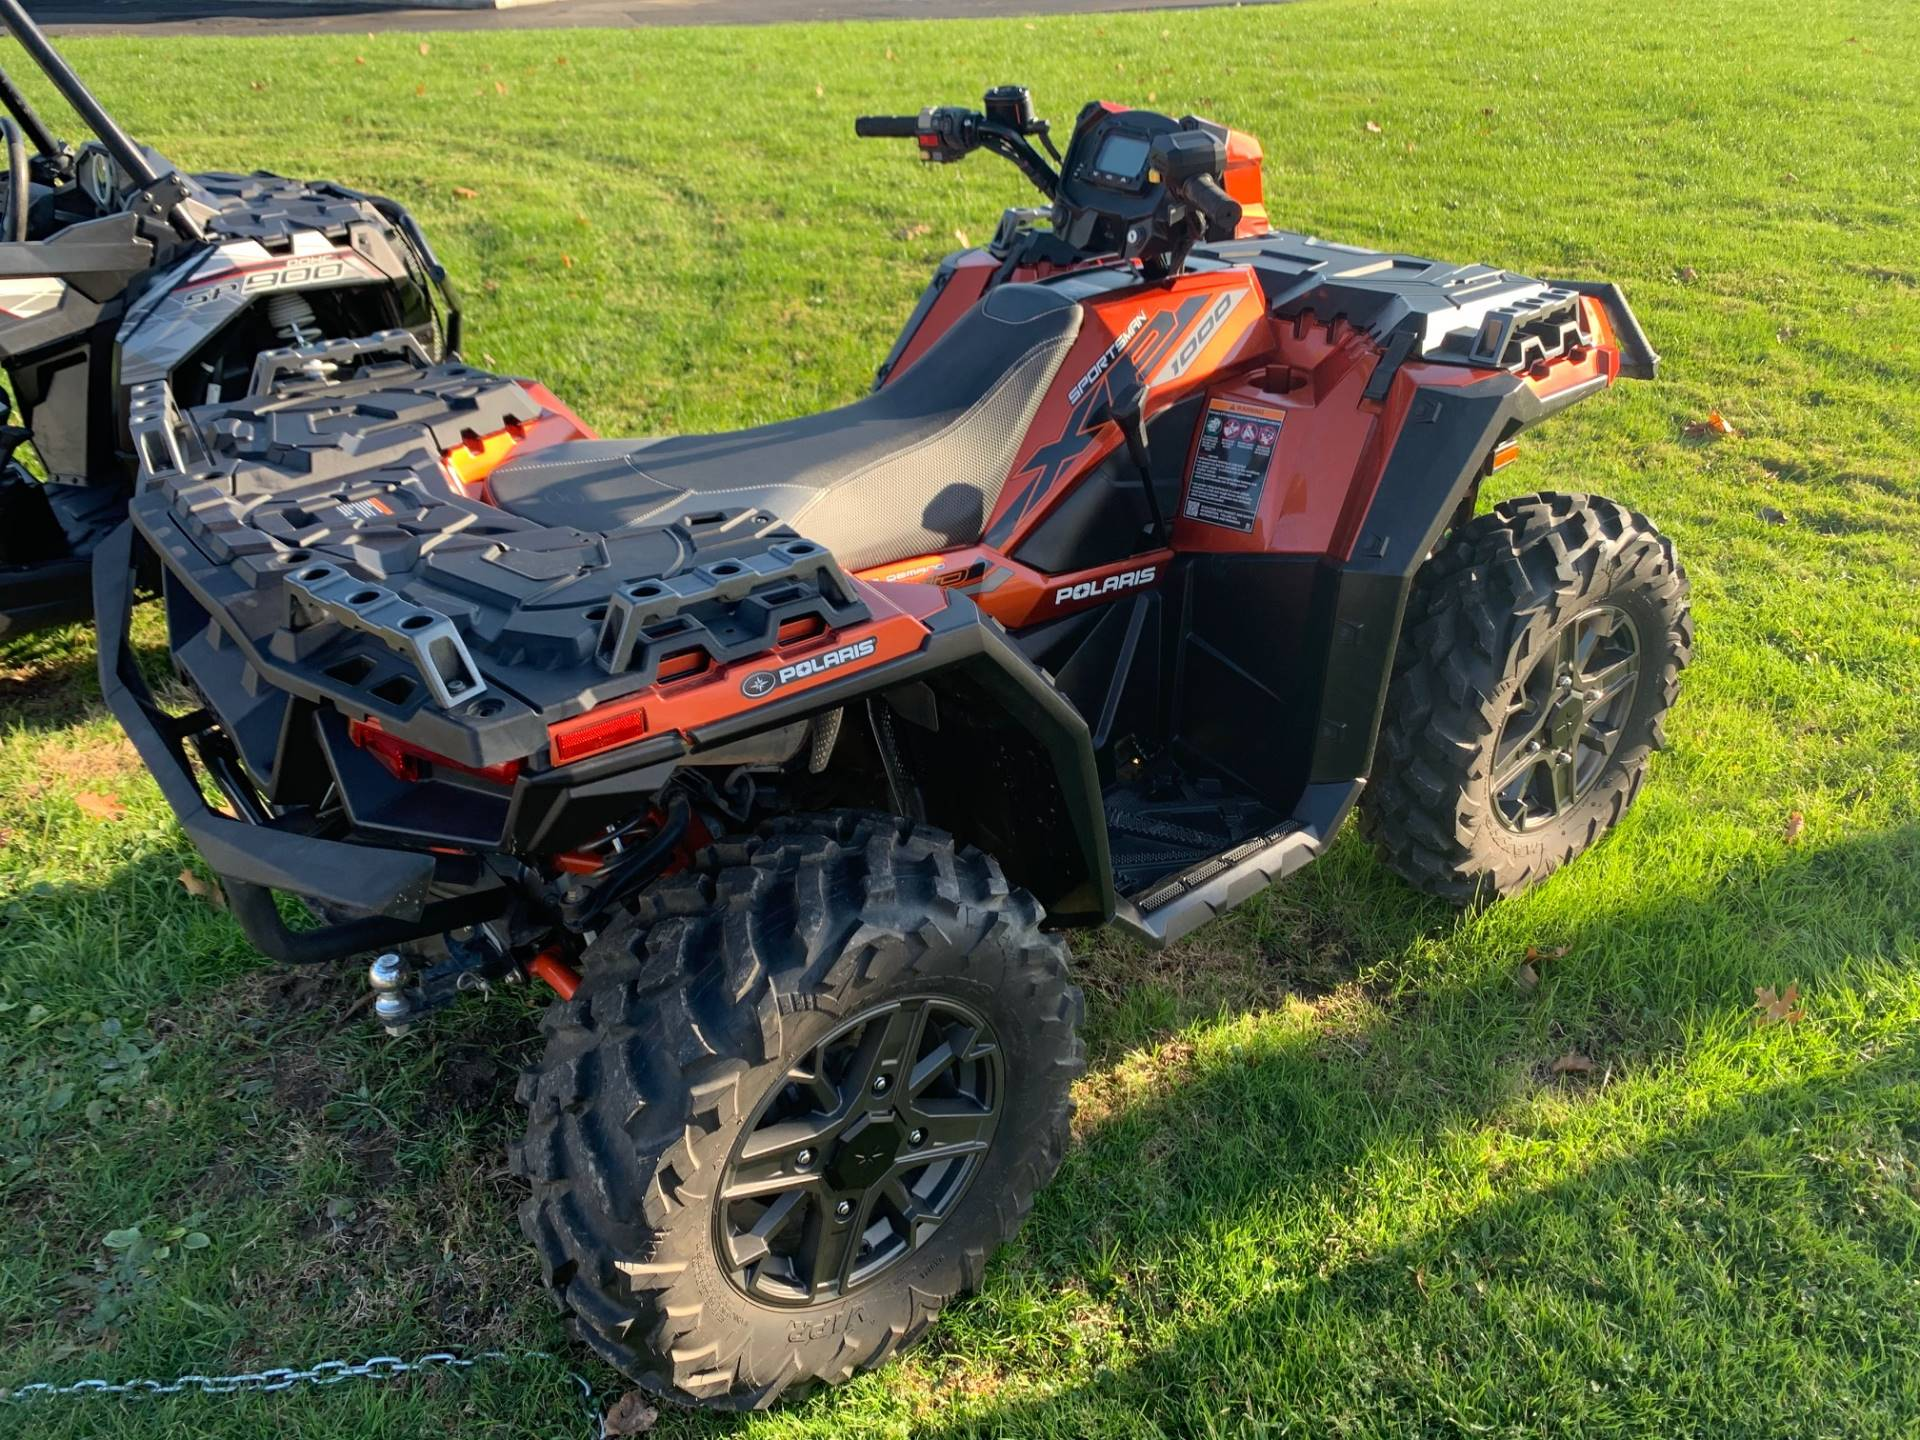 2018 Polaris Sportsman XP 1000 in Farmington, New York - Photo 3